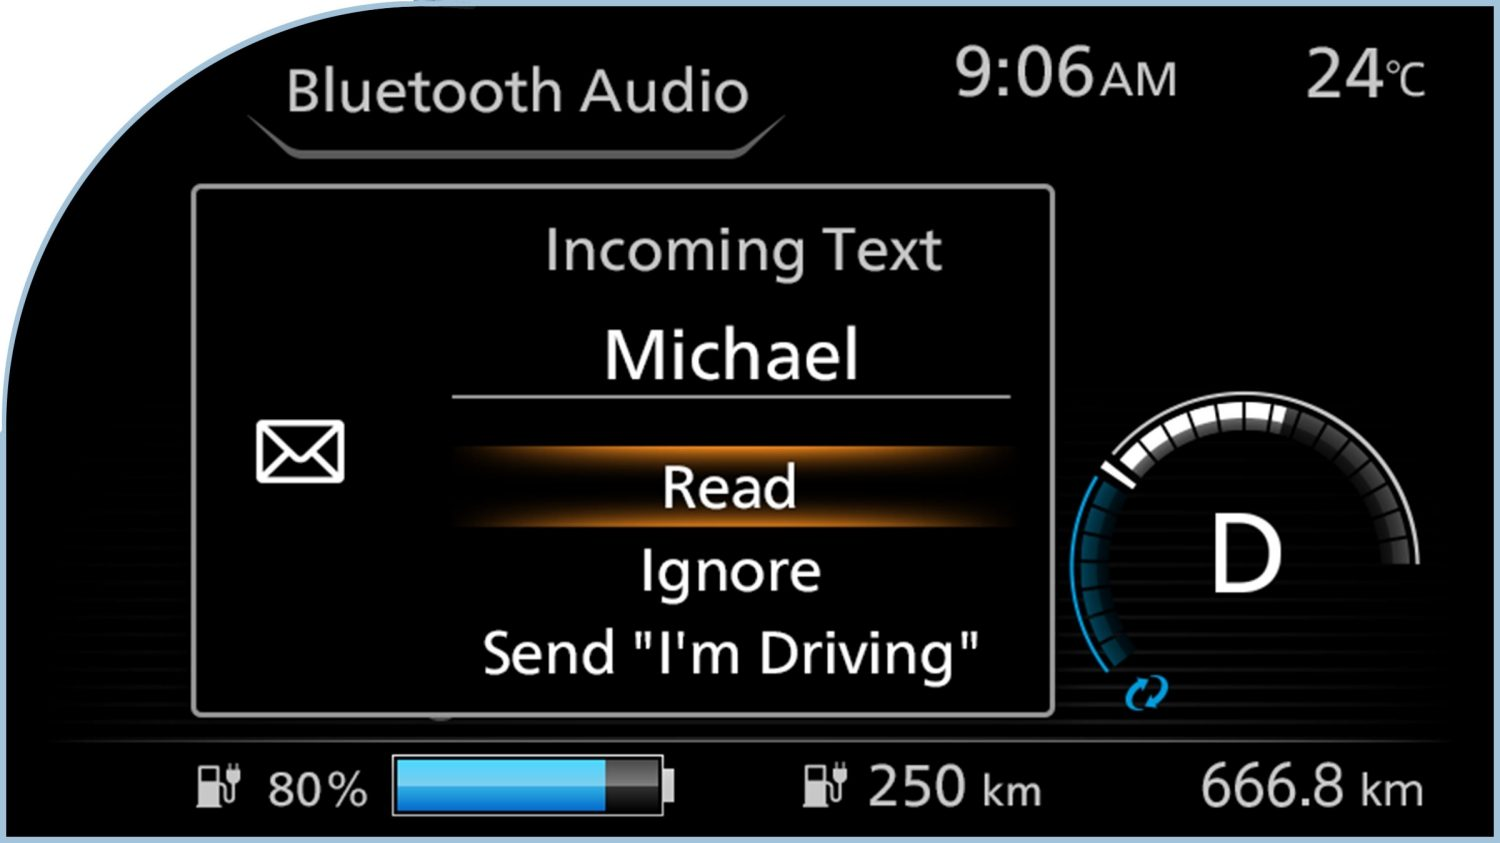 New Nissan LEAF digital information display showing caller ID